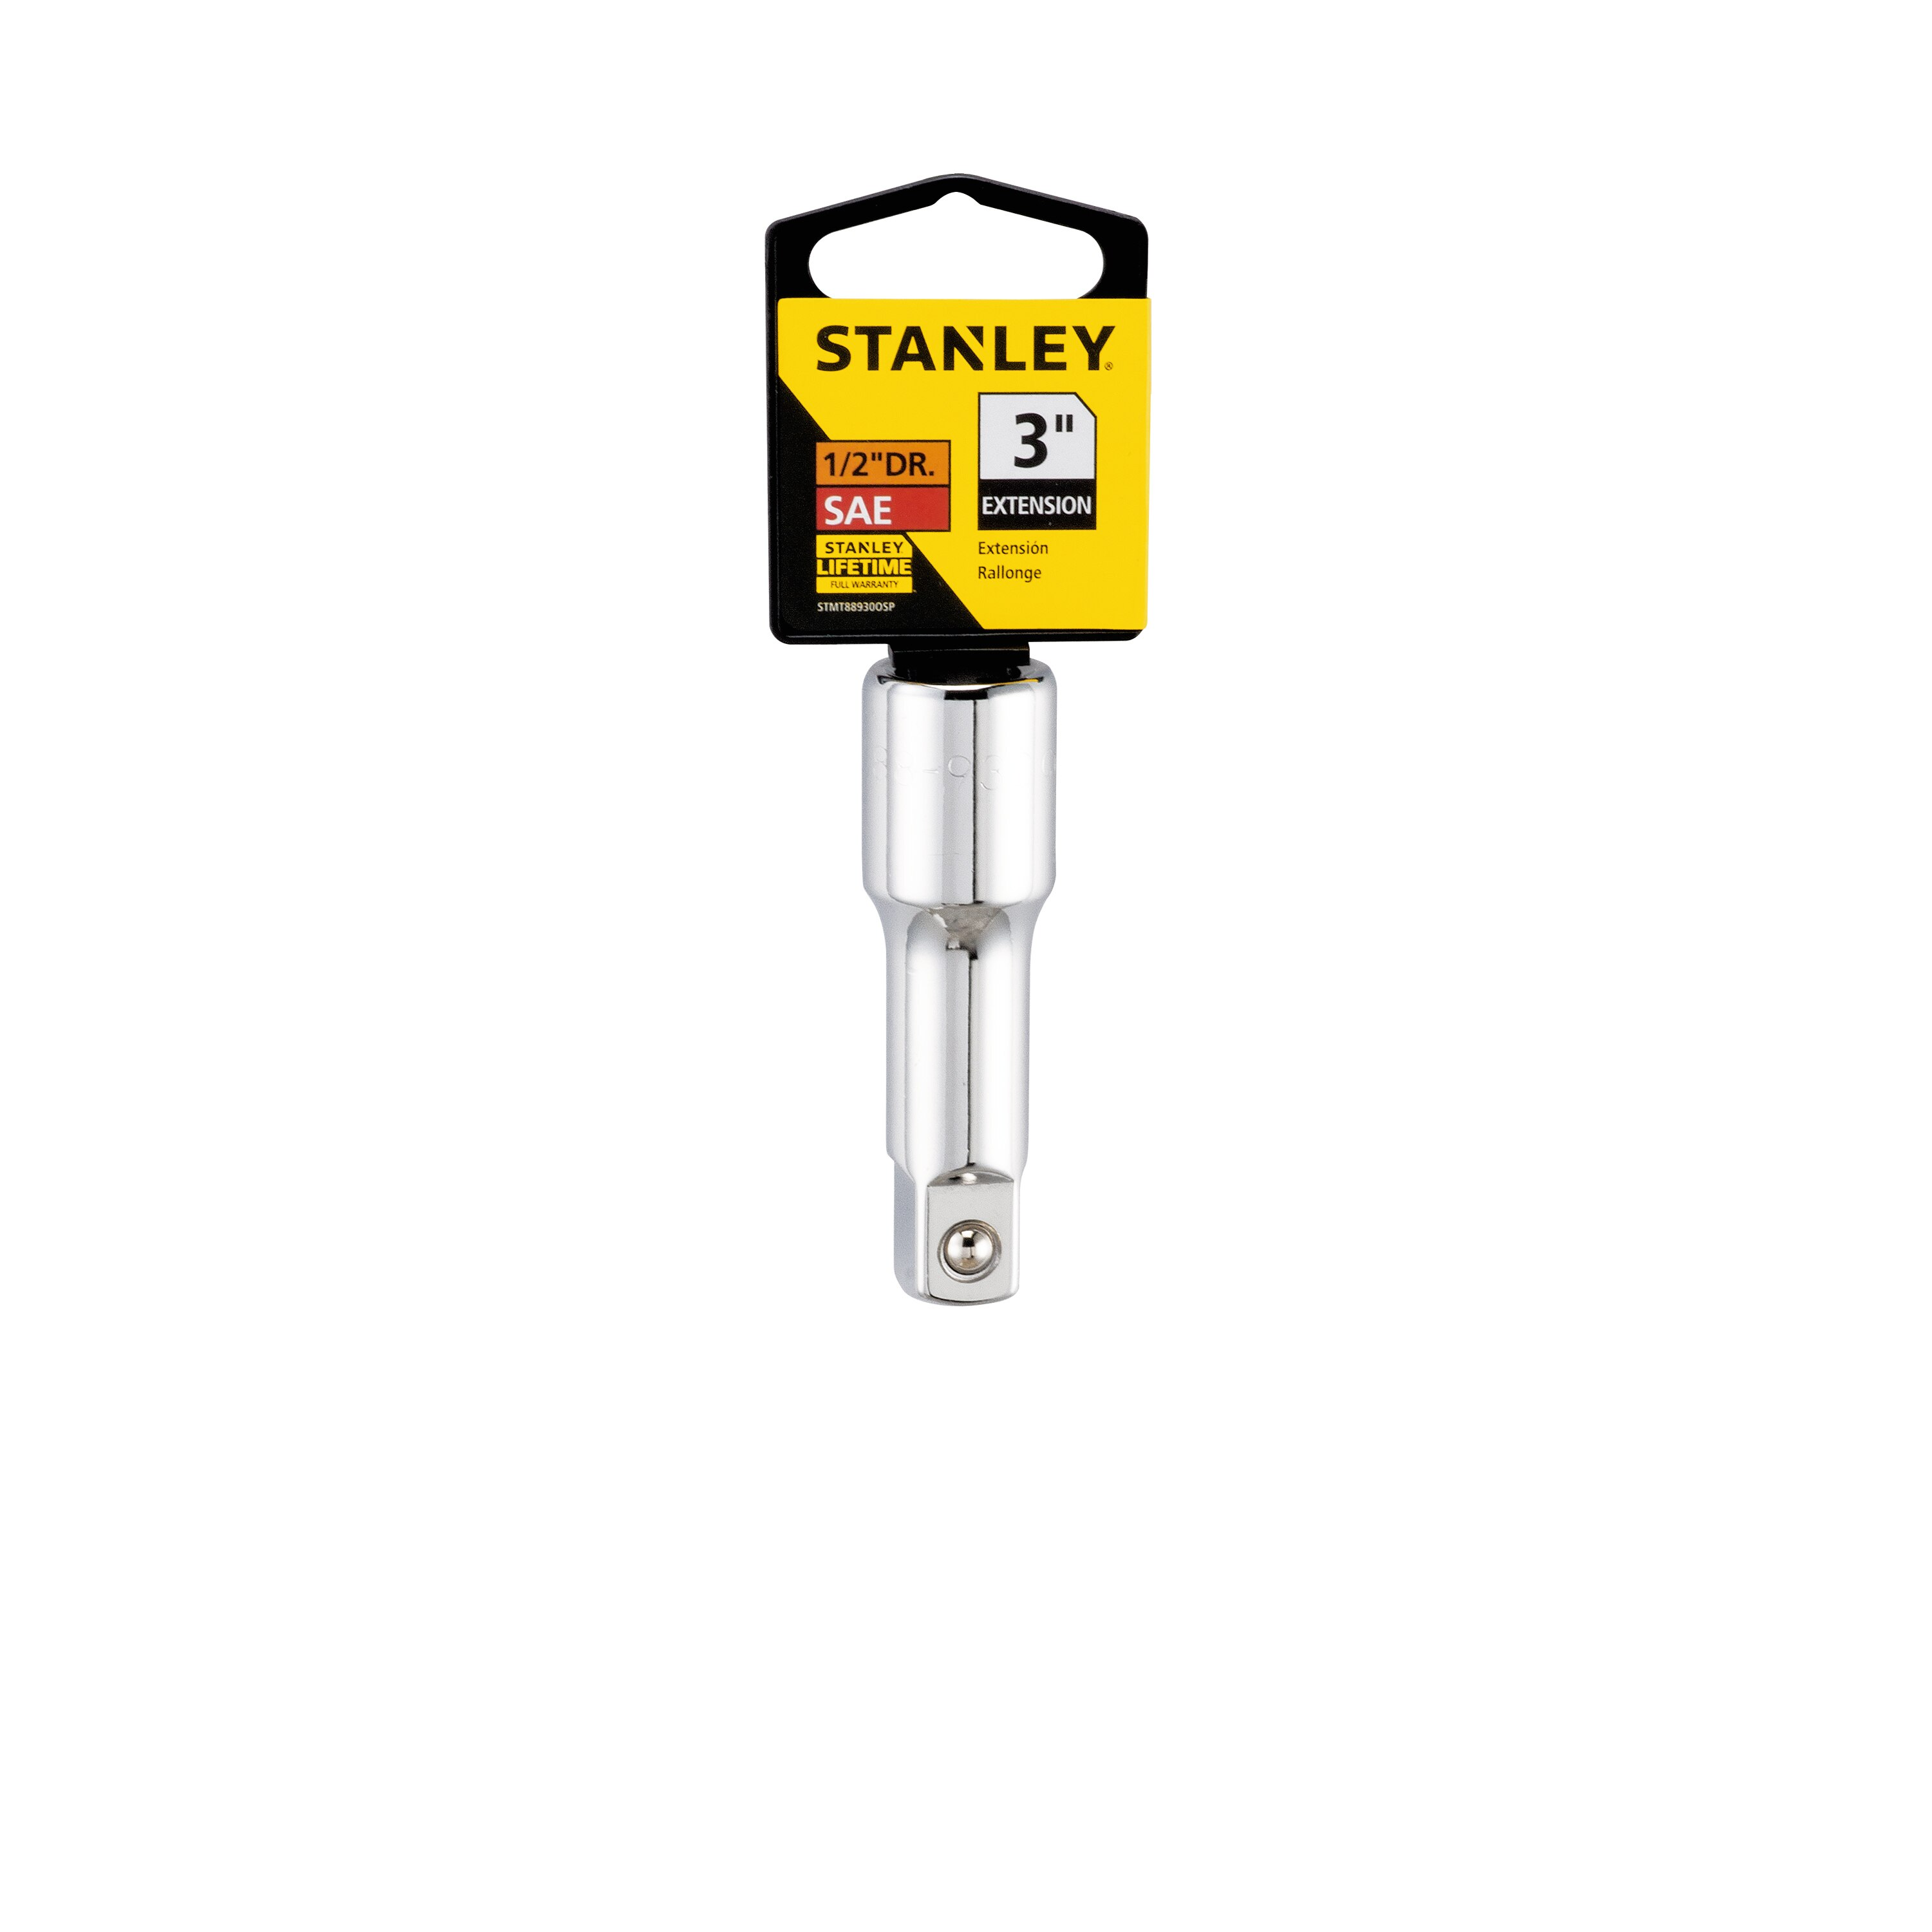 Stanley Tools - 12 Drive 3 in Extension Bar - STMT88930OSP